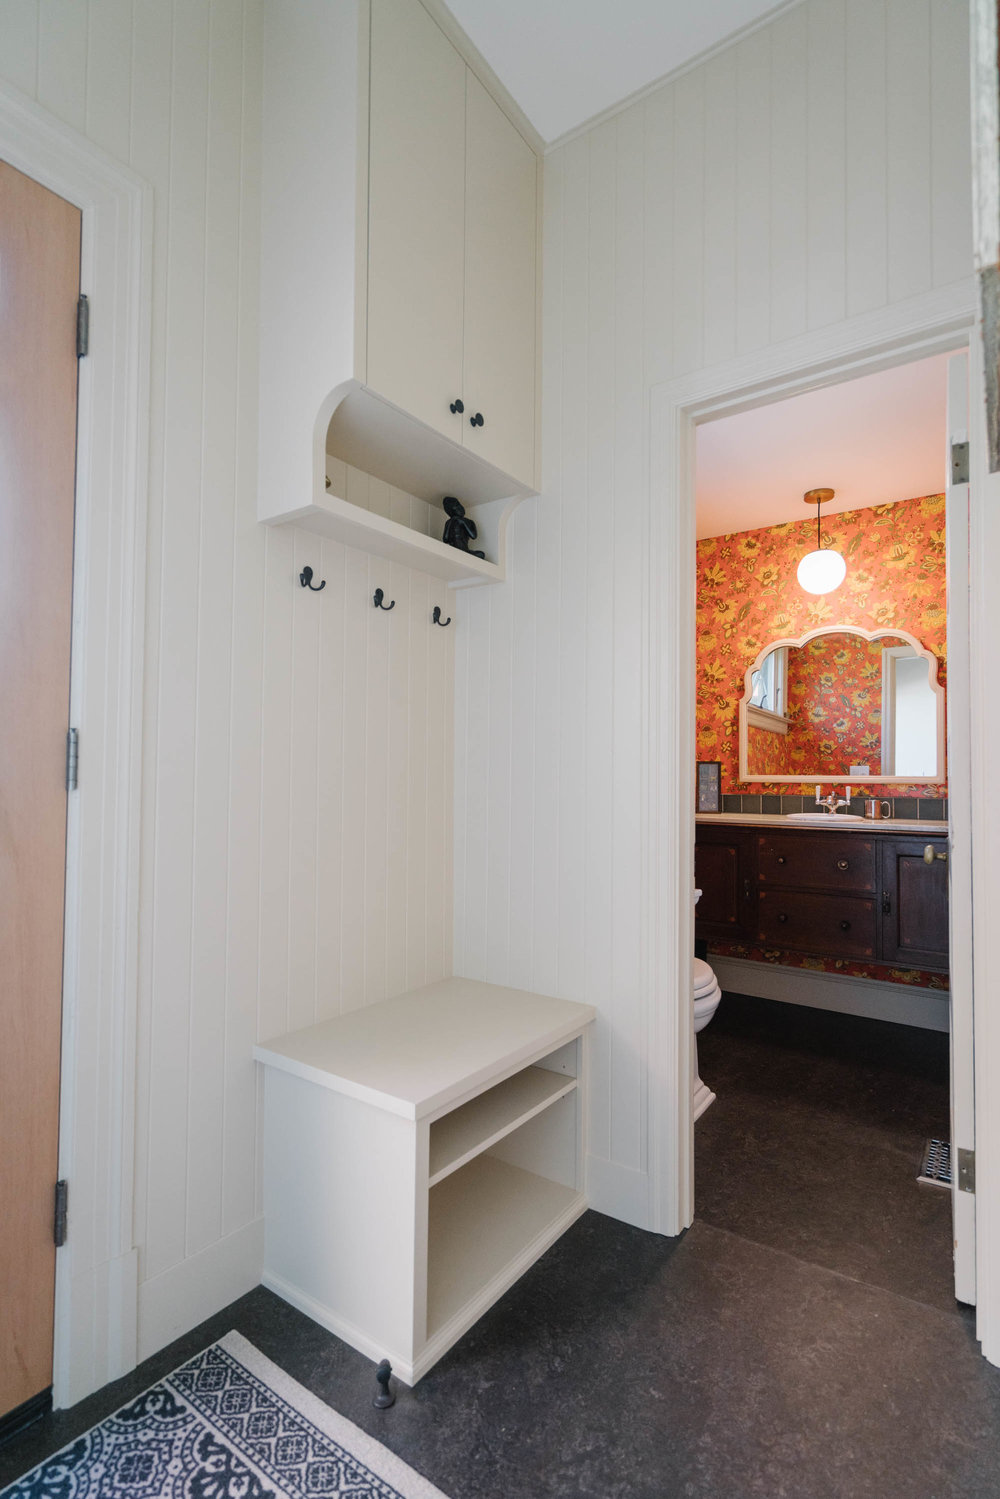 A sweet powder room off the mudporch was wrapped with a wallpaper featuring some of the same tones as the wallpaper in the kitchen, creating a cohesive feel through the entire remodel. This vibrant little space is now a destination with big presence.